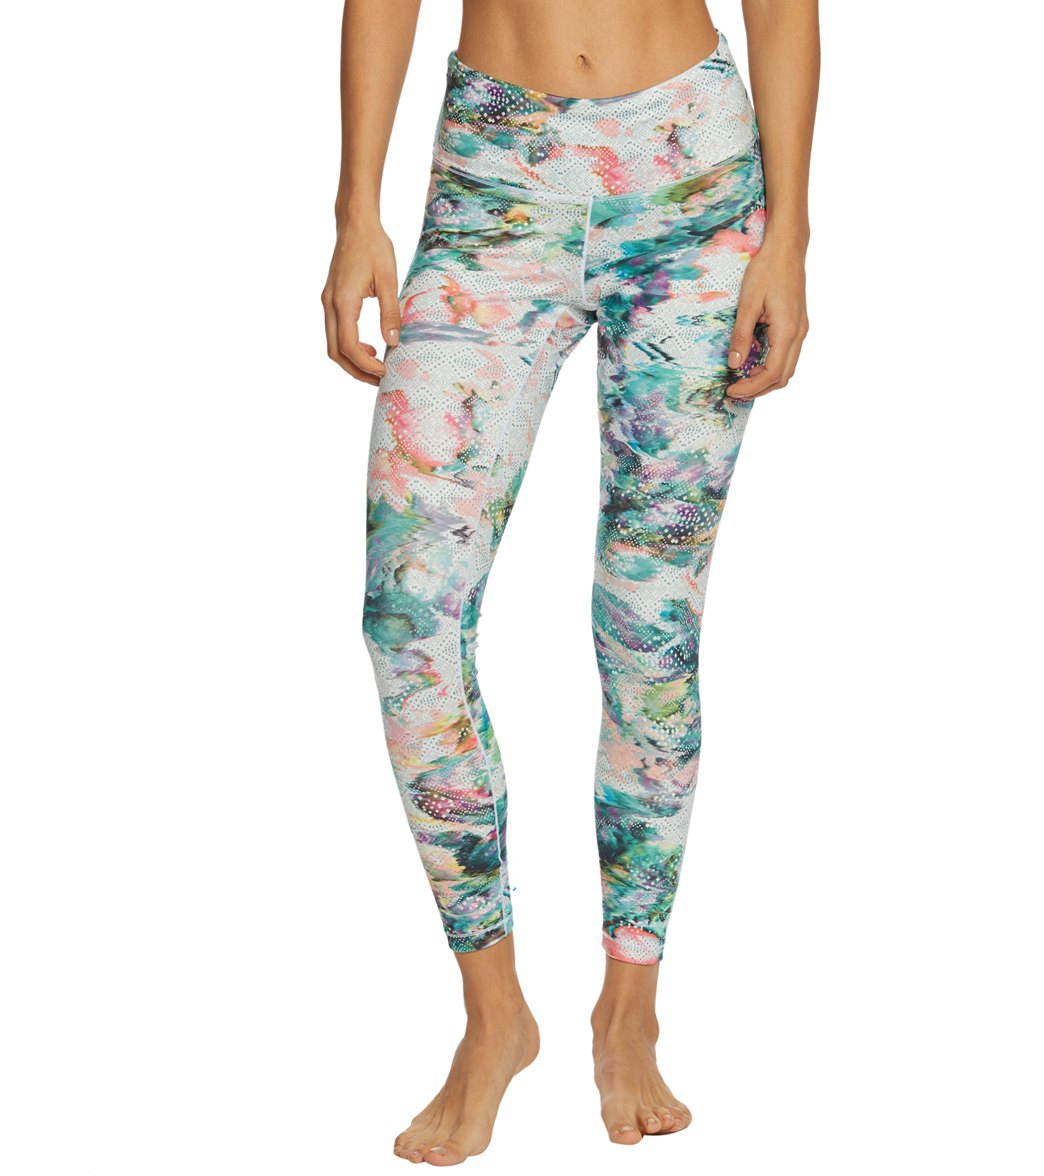 e373b2009b8e7 Prana Pillar Printed Yoga Leggings at YogaOutlet.com - Free Shipping